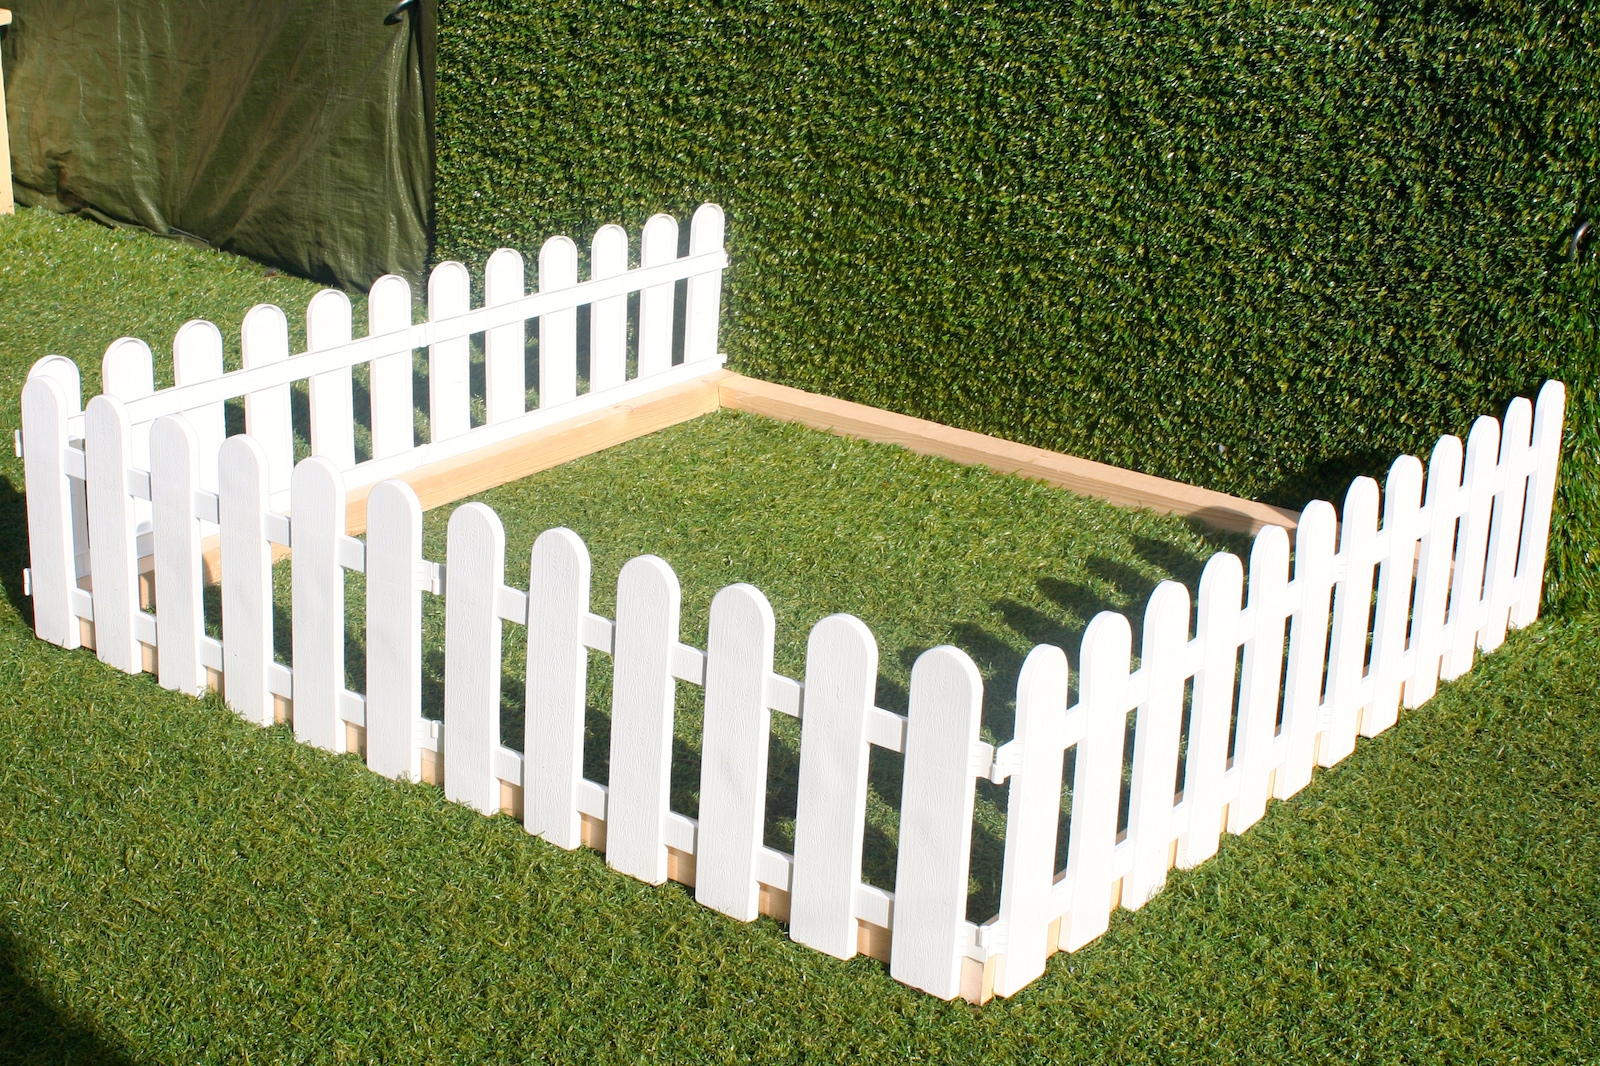 Low Wooden Fence Staxel: PLASTIC FENCING LAWN GRASS BORDER PATH GRAVE EDGING FANCY